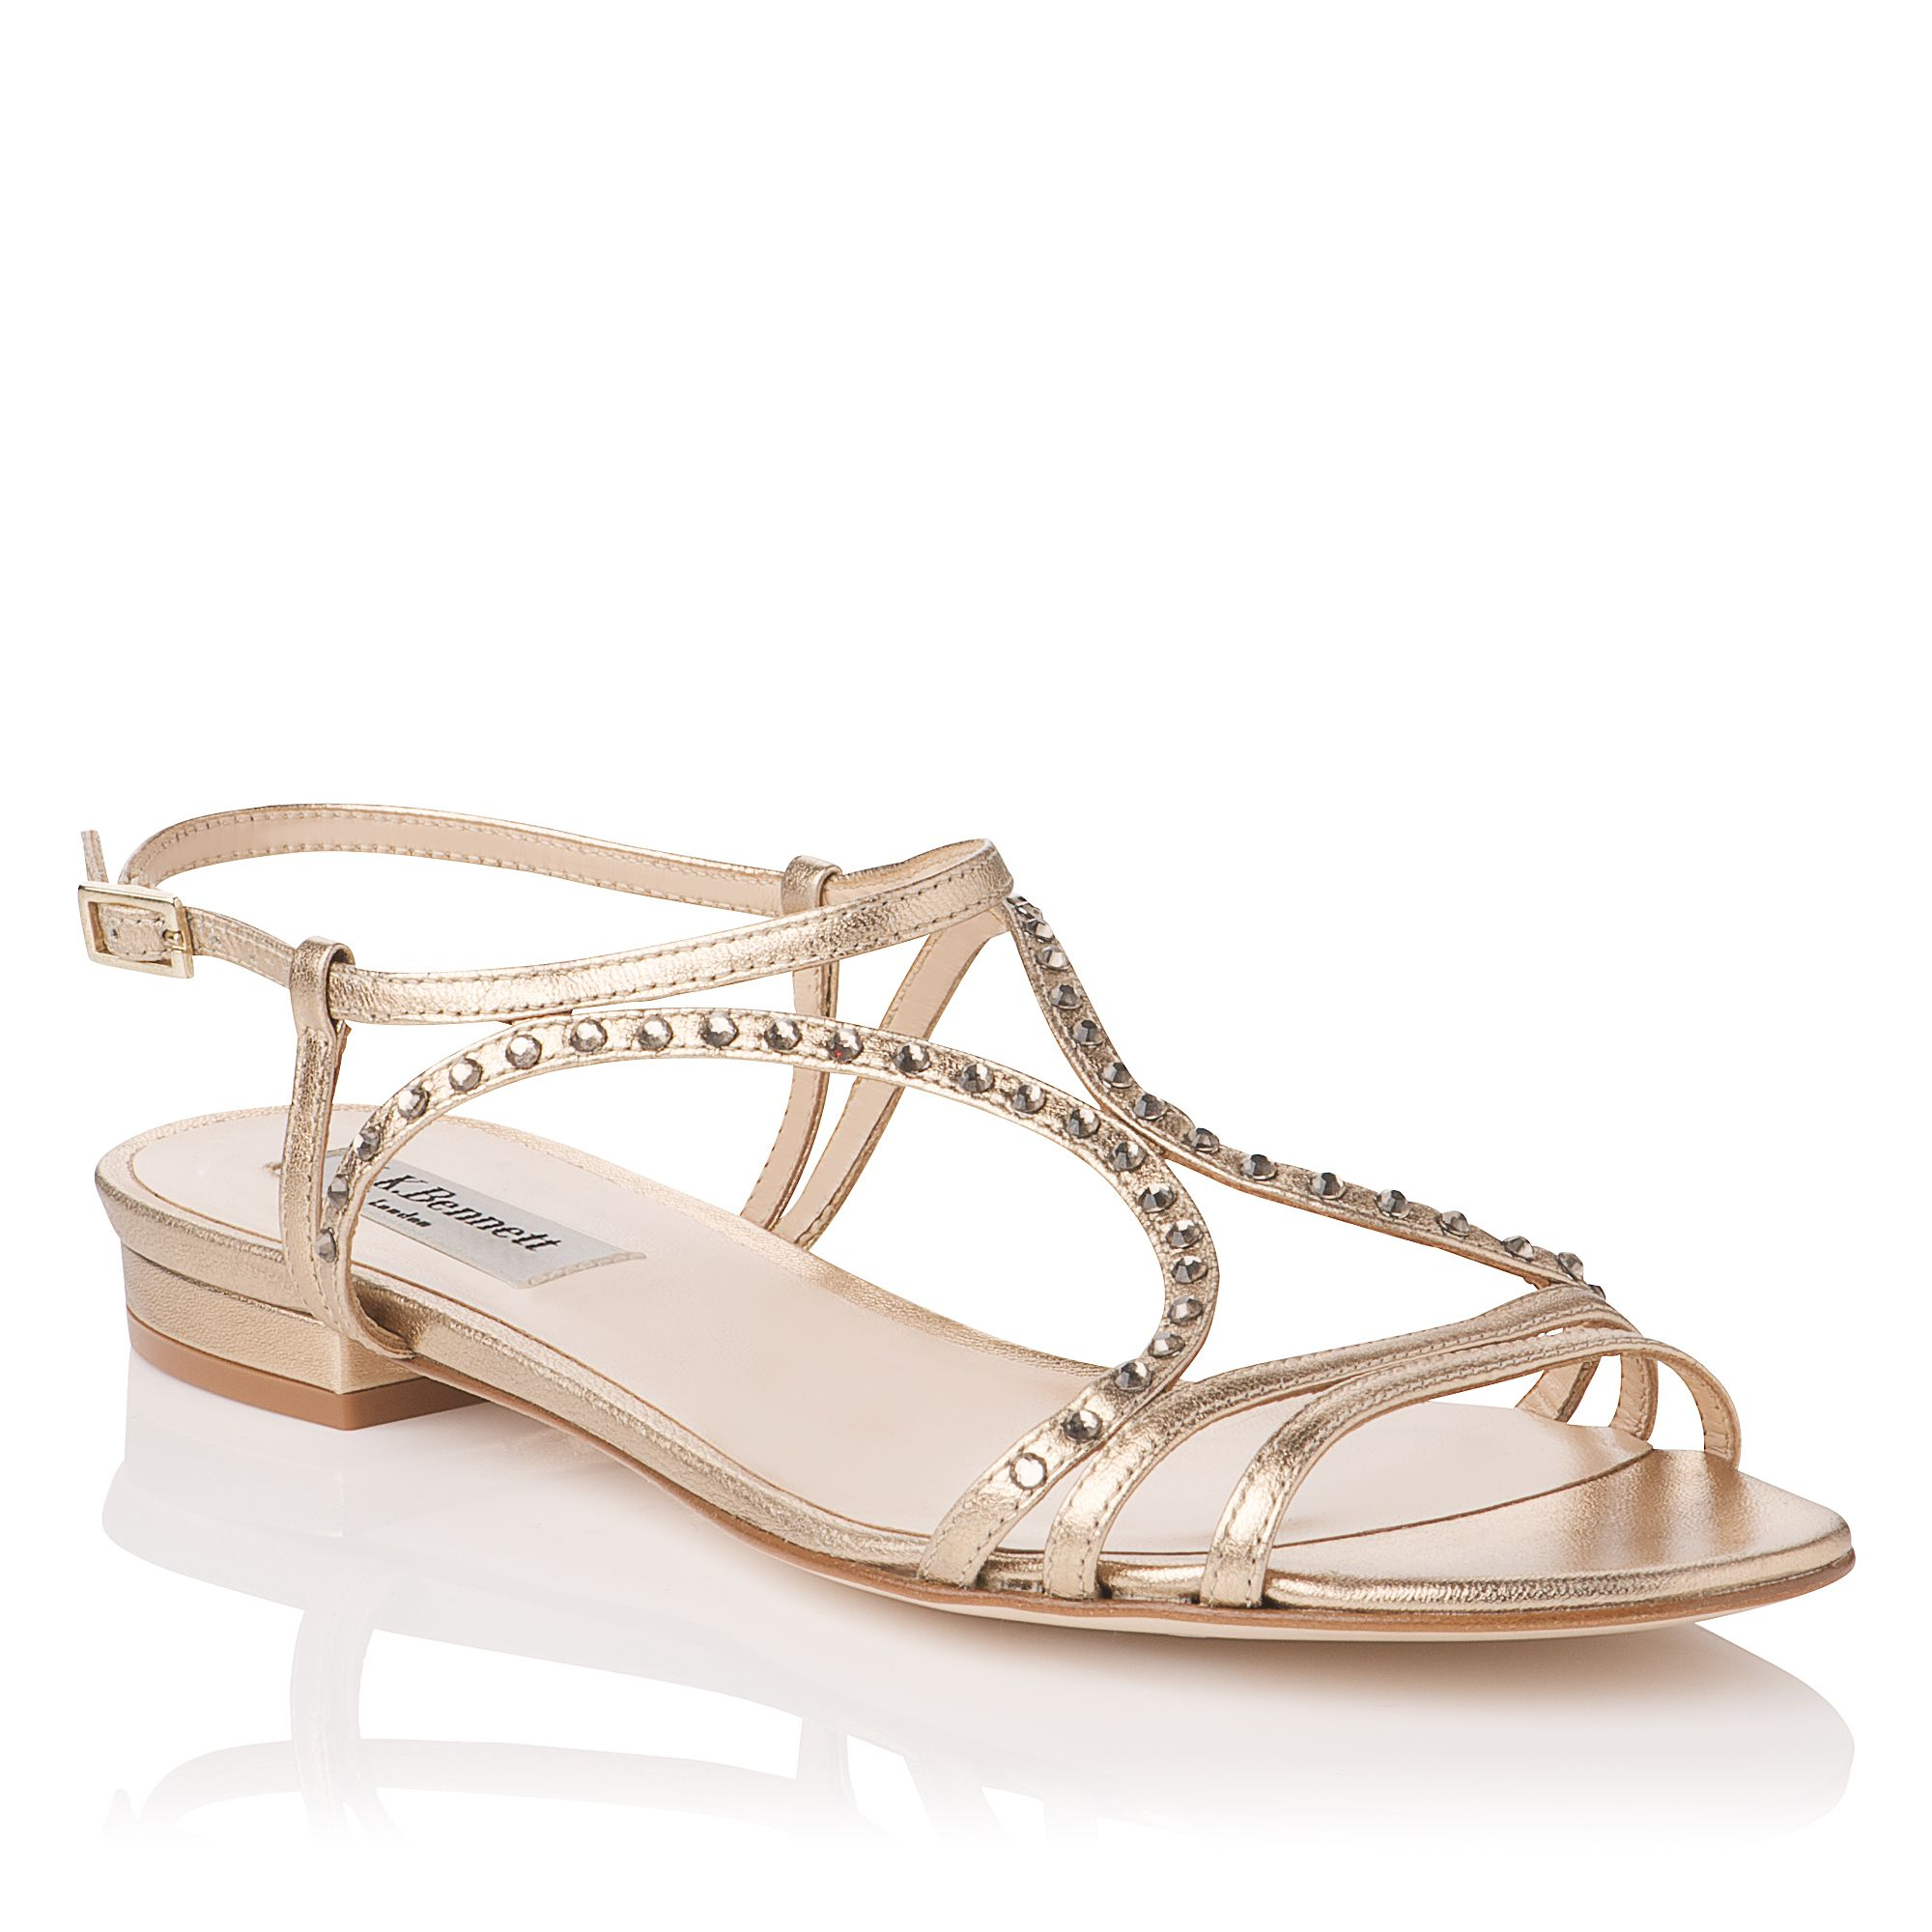 Lexi crystal detail sandals